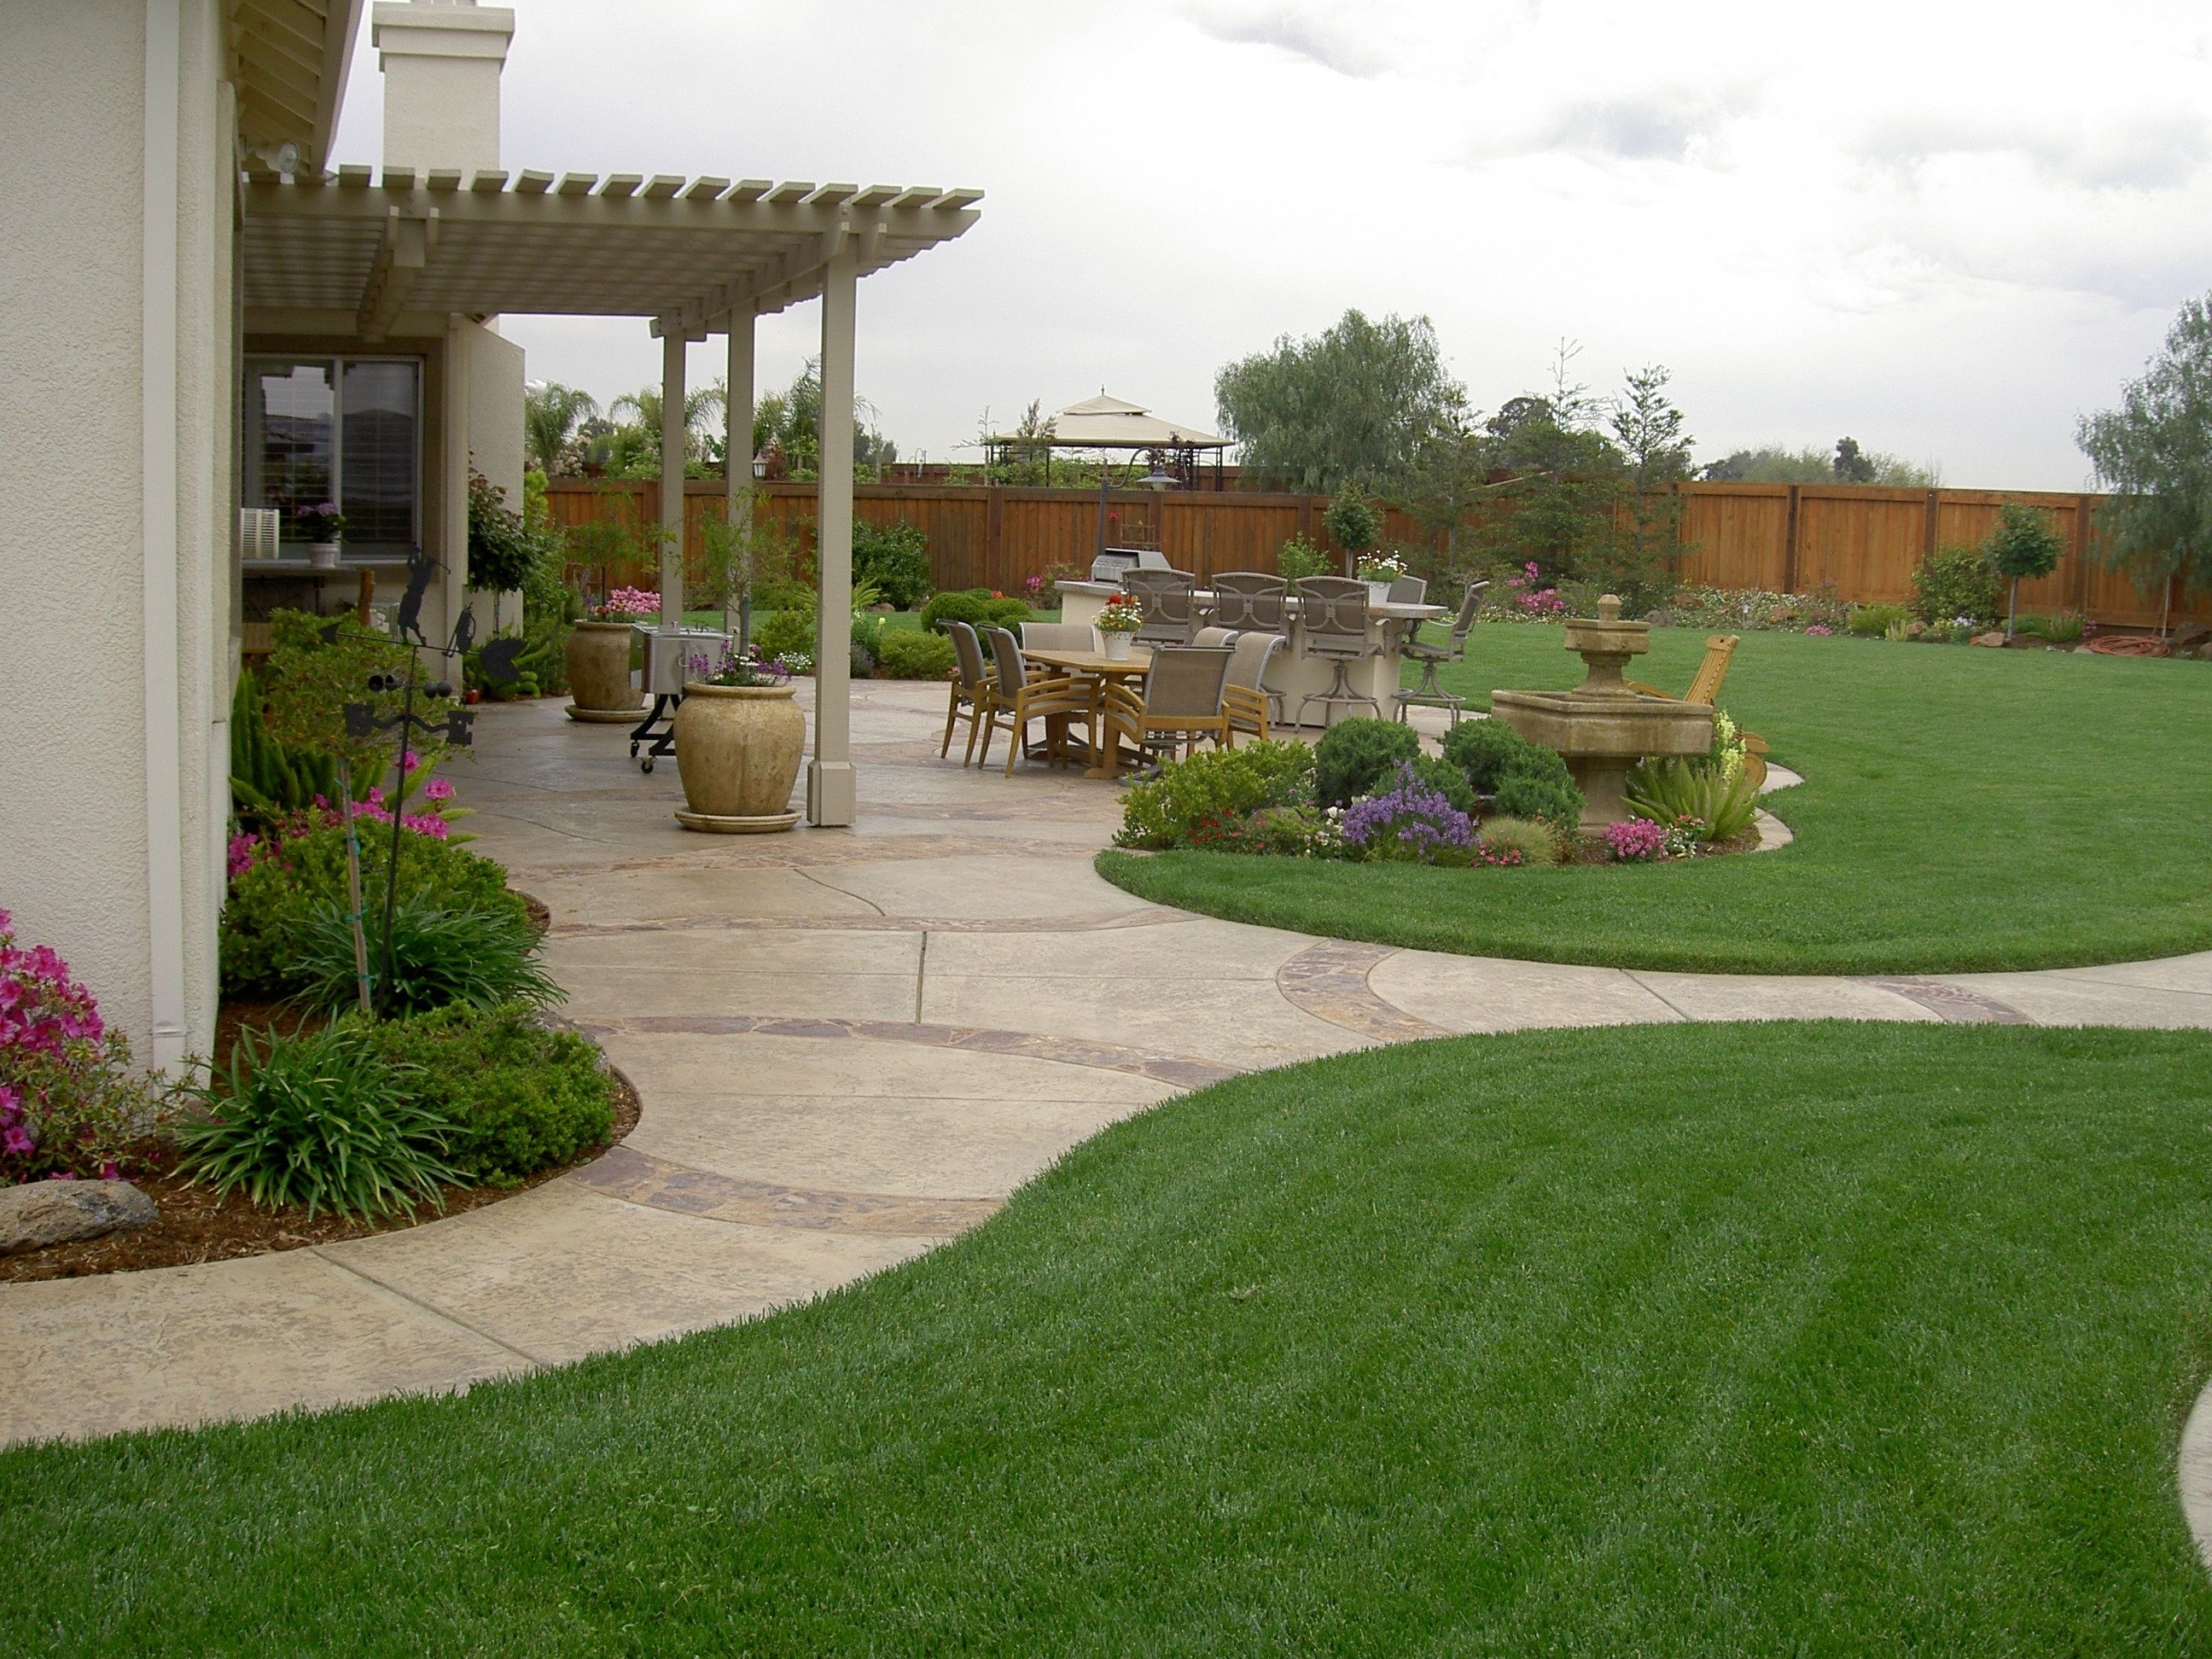 20 Awesome Landscaping Ideas For Your Backyard | Pinterest within Simple Backyard Garden Ideas